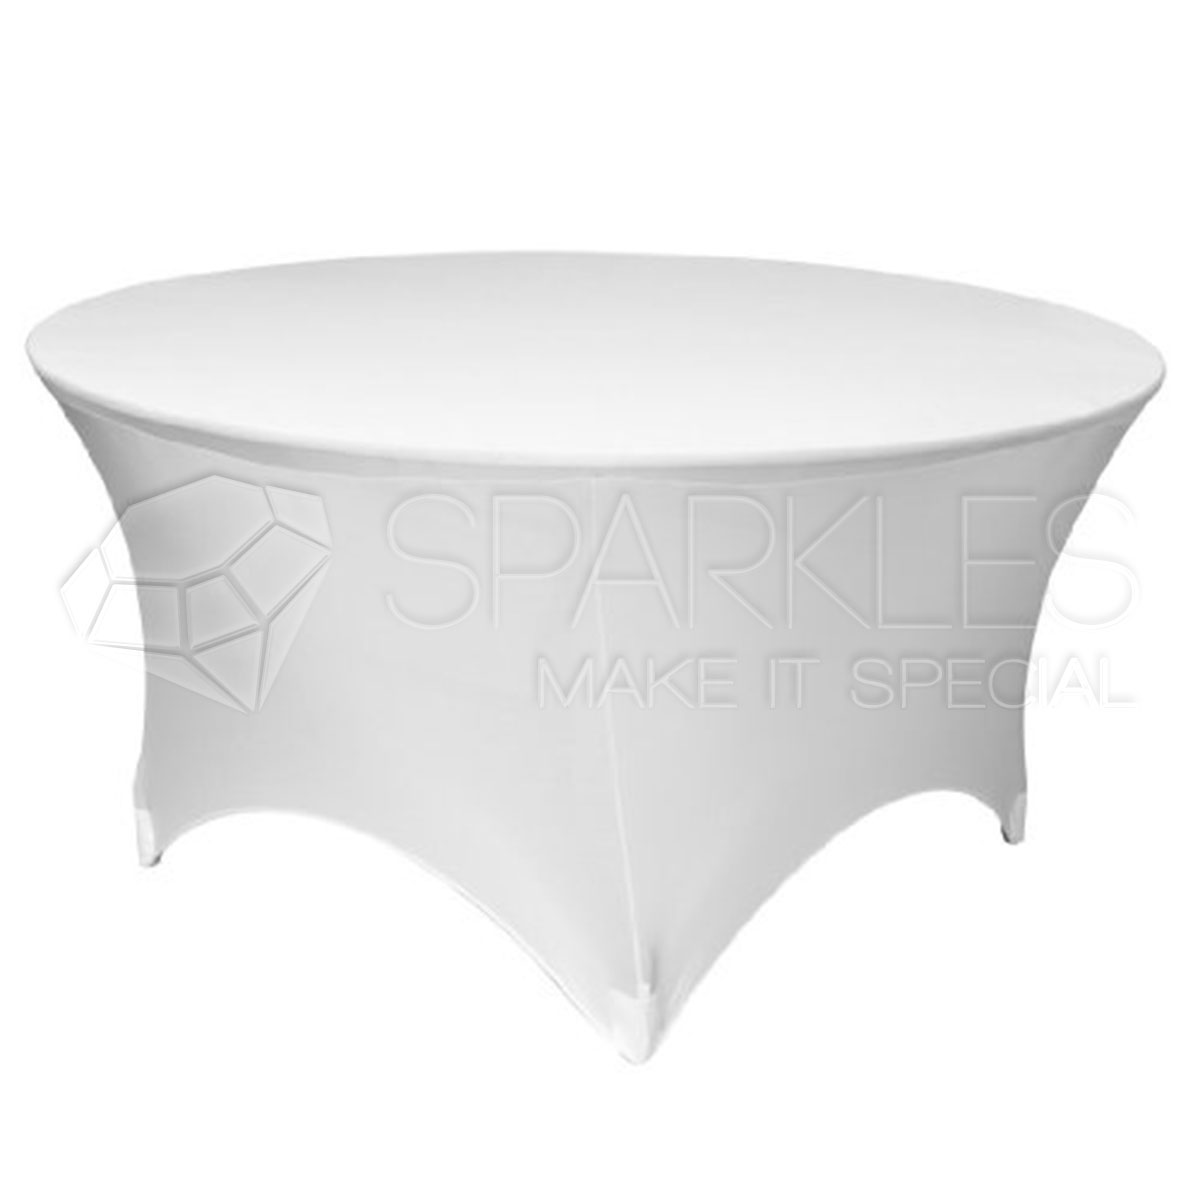 1 pc 60 round fitted spandex cloth fabric linen tablecloth white. Black Bedroom Furniture Sets. Home Design Ideas